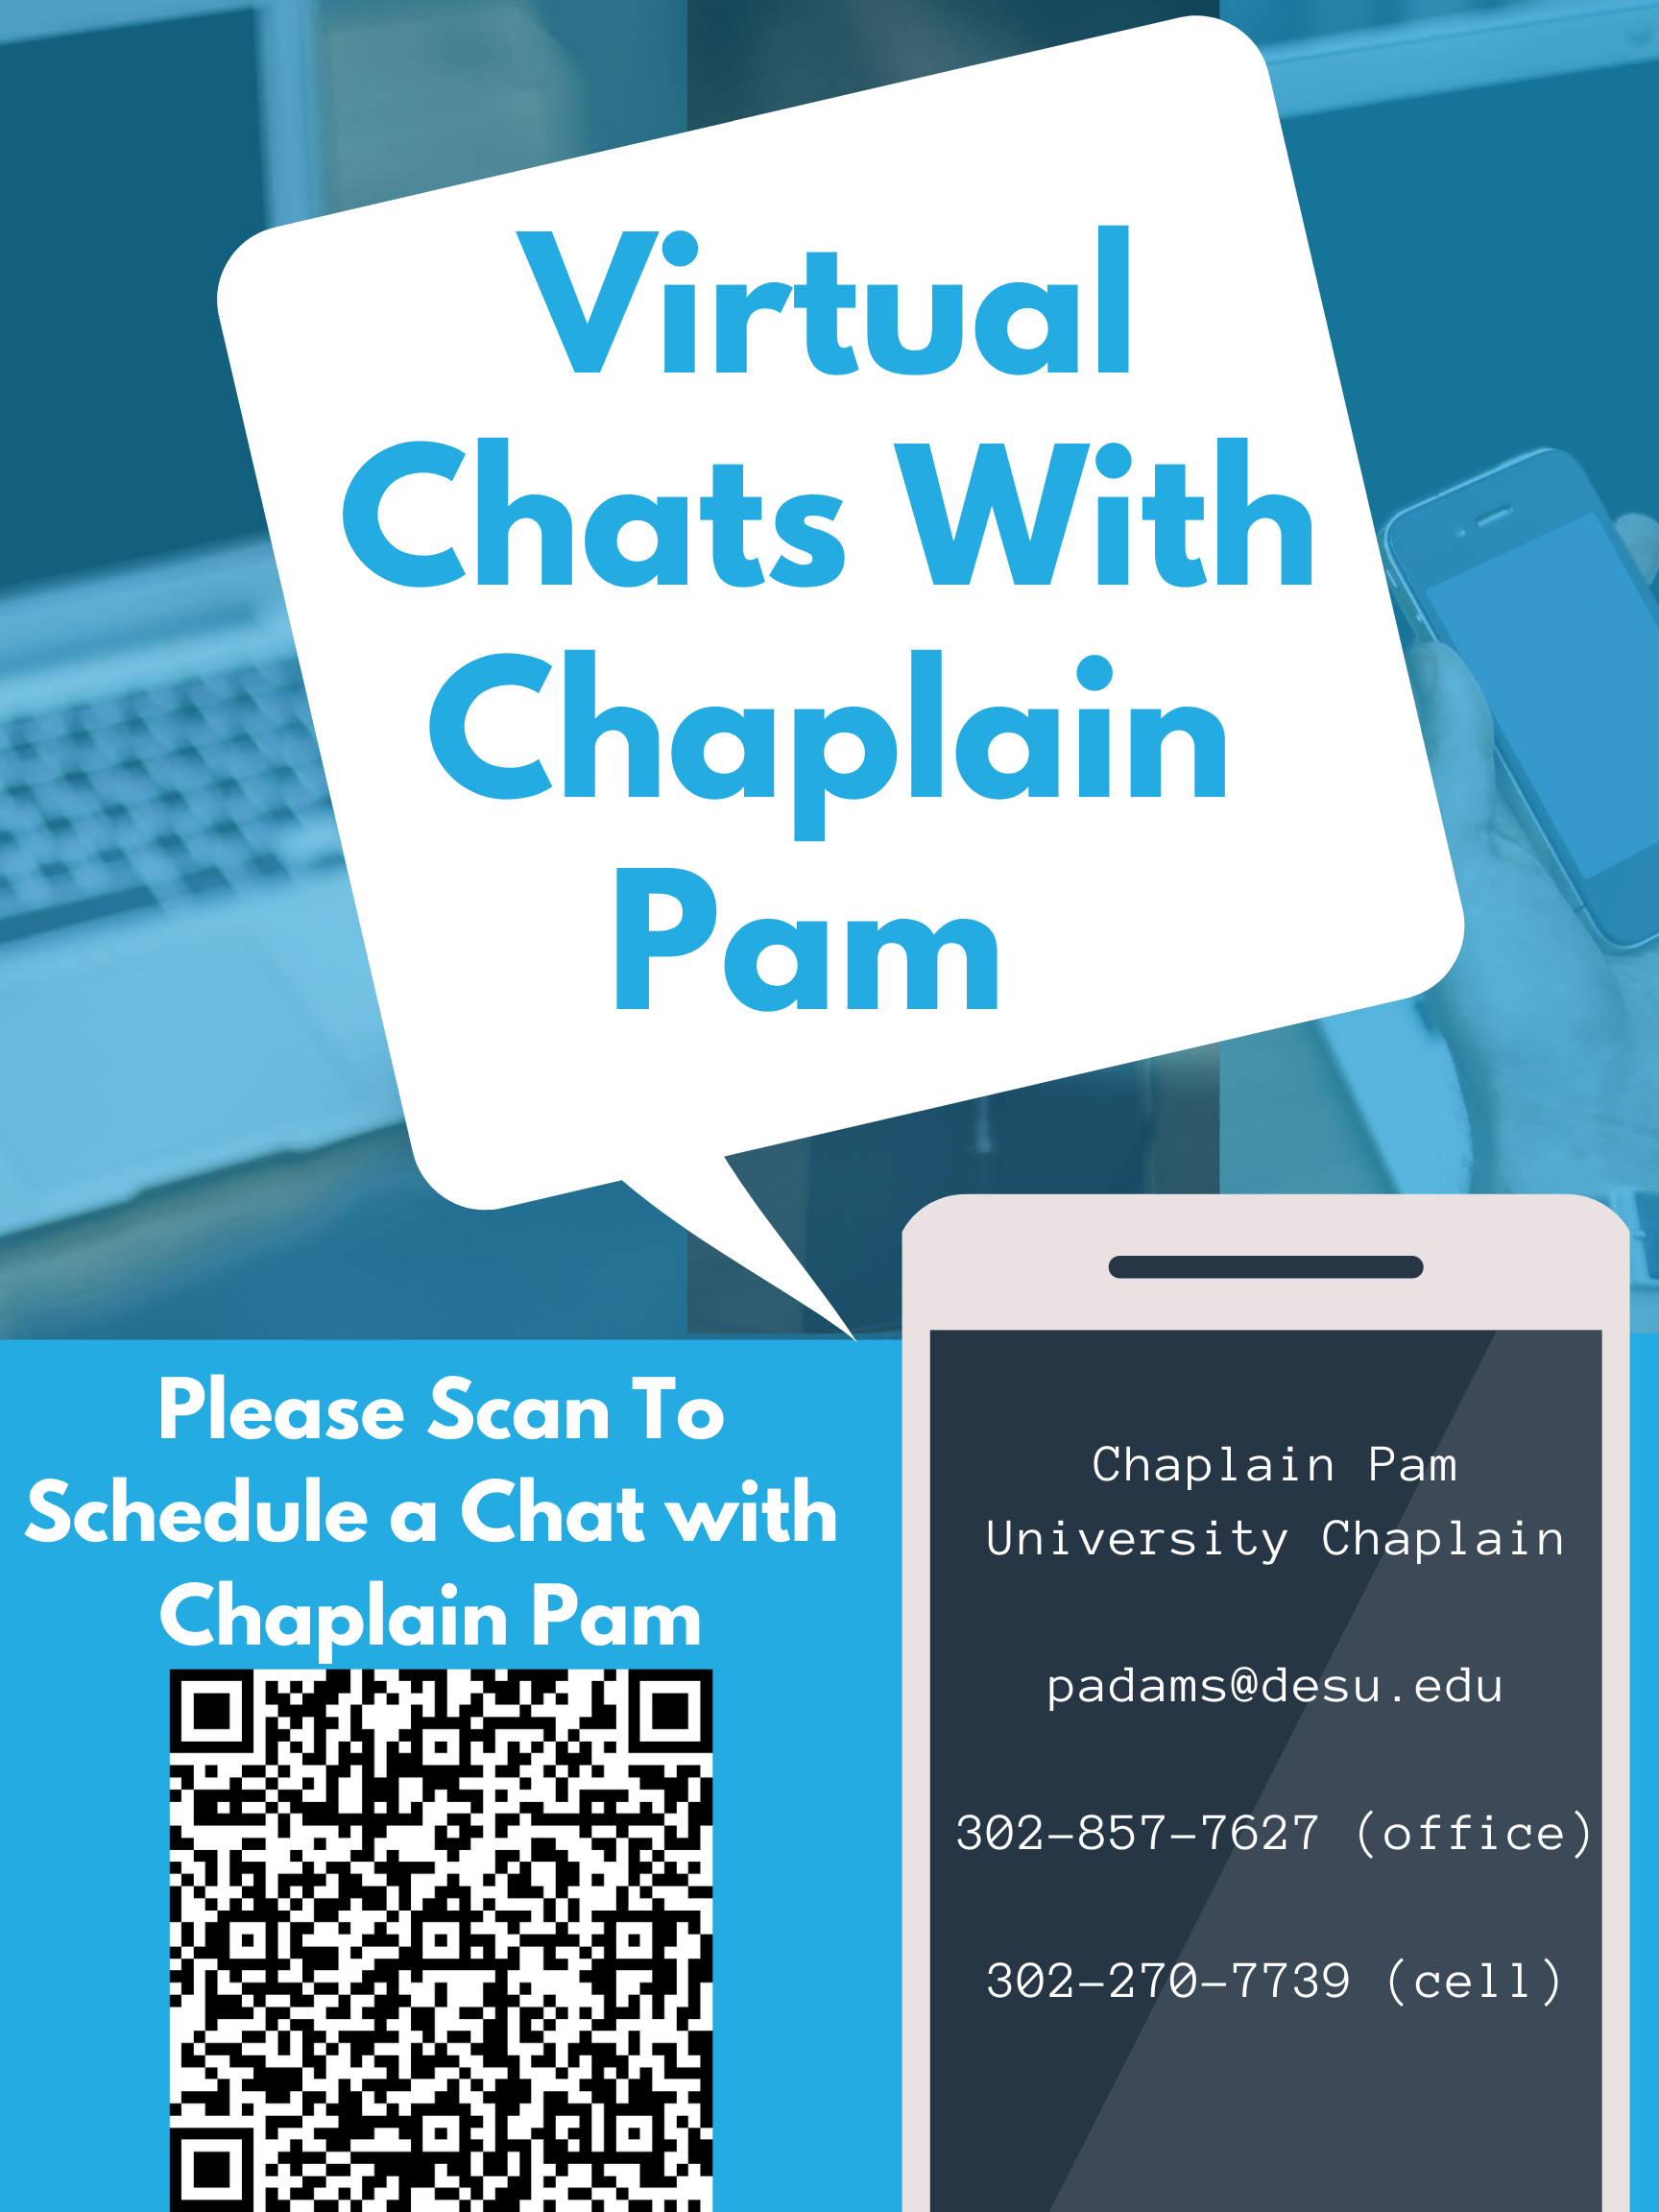 chant with chaplain pam